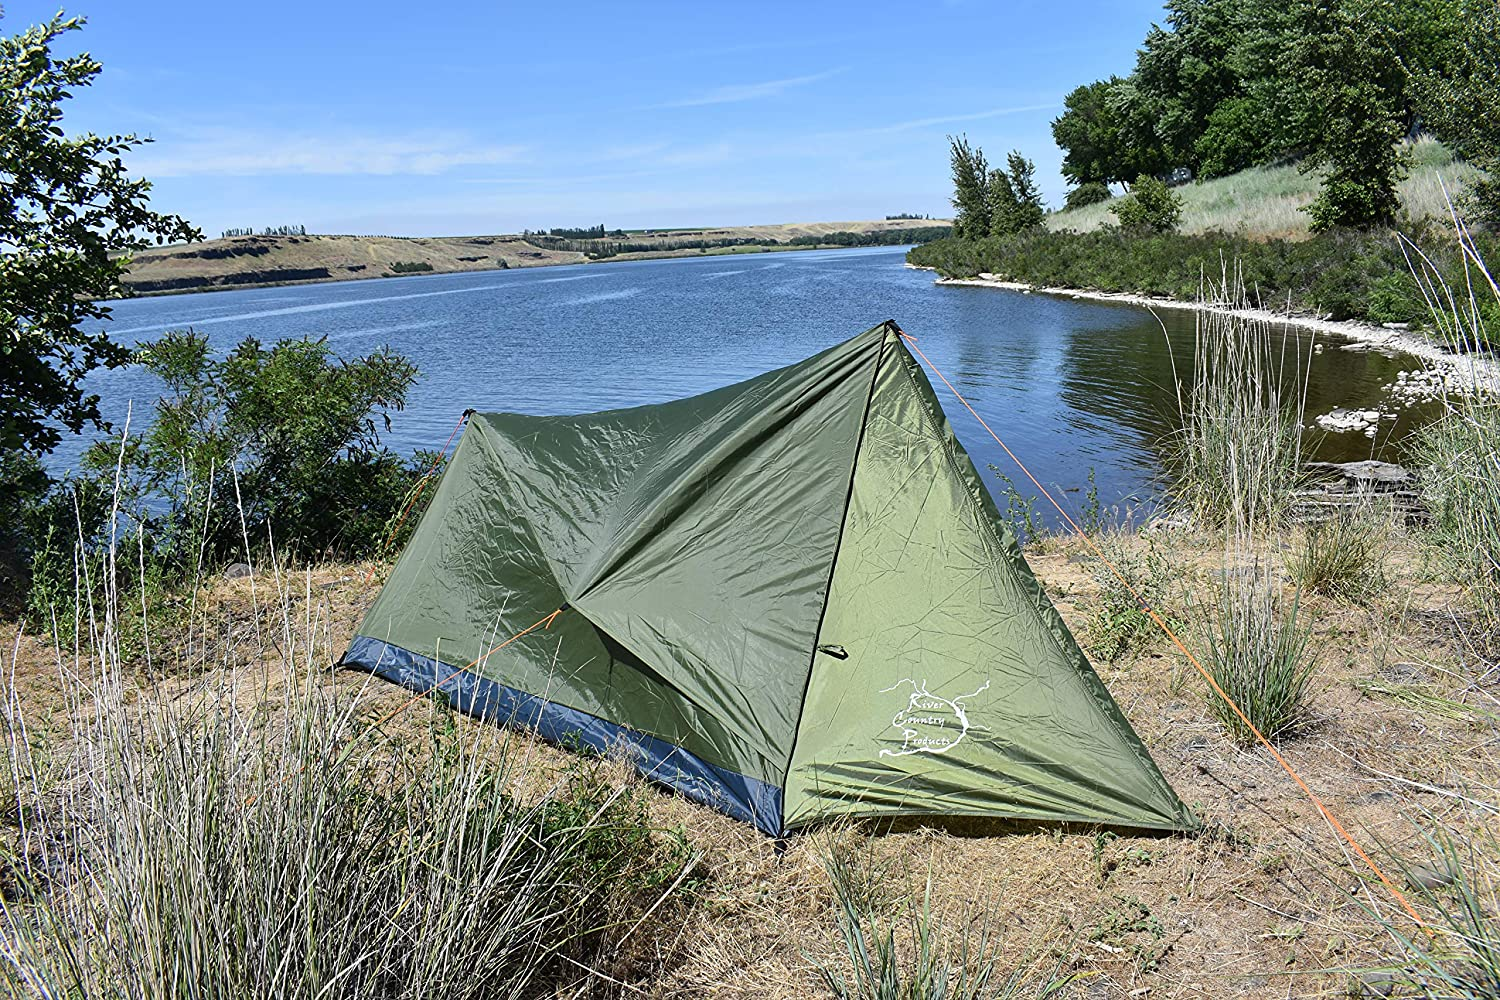 River Country Products Trekker Tent 1V, Lightweight One Person Backpacking Tent with Vestibule